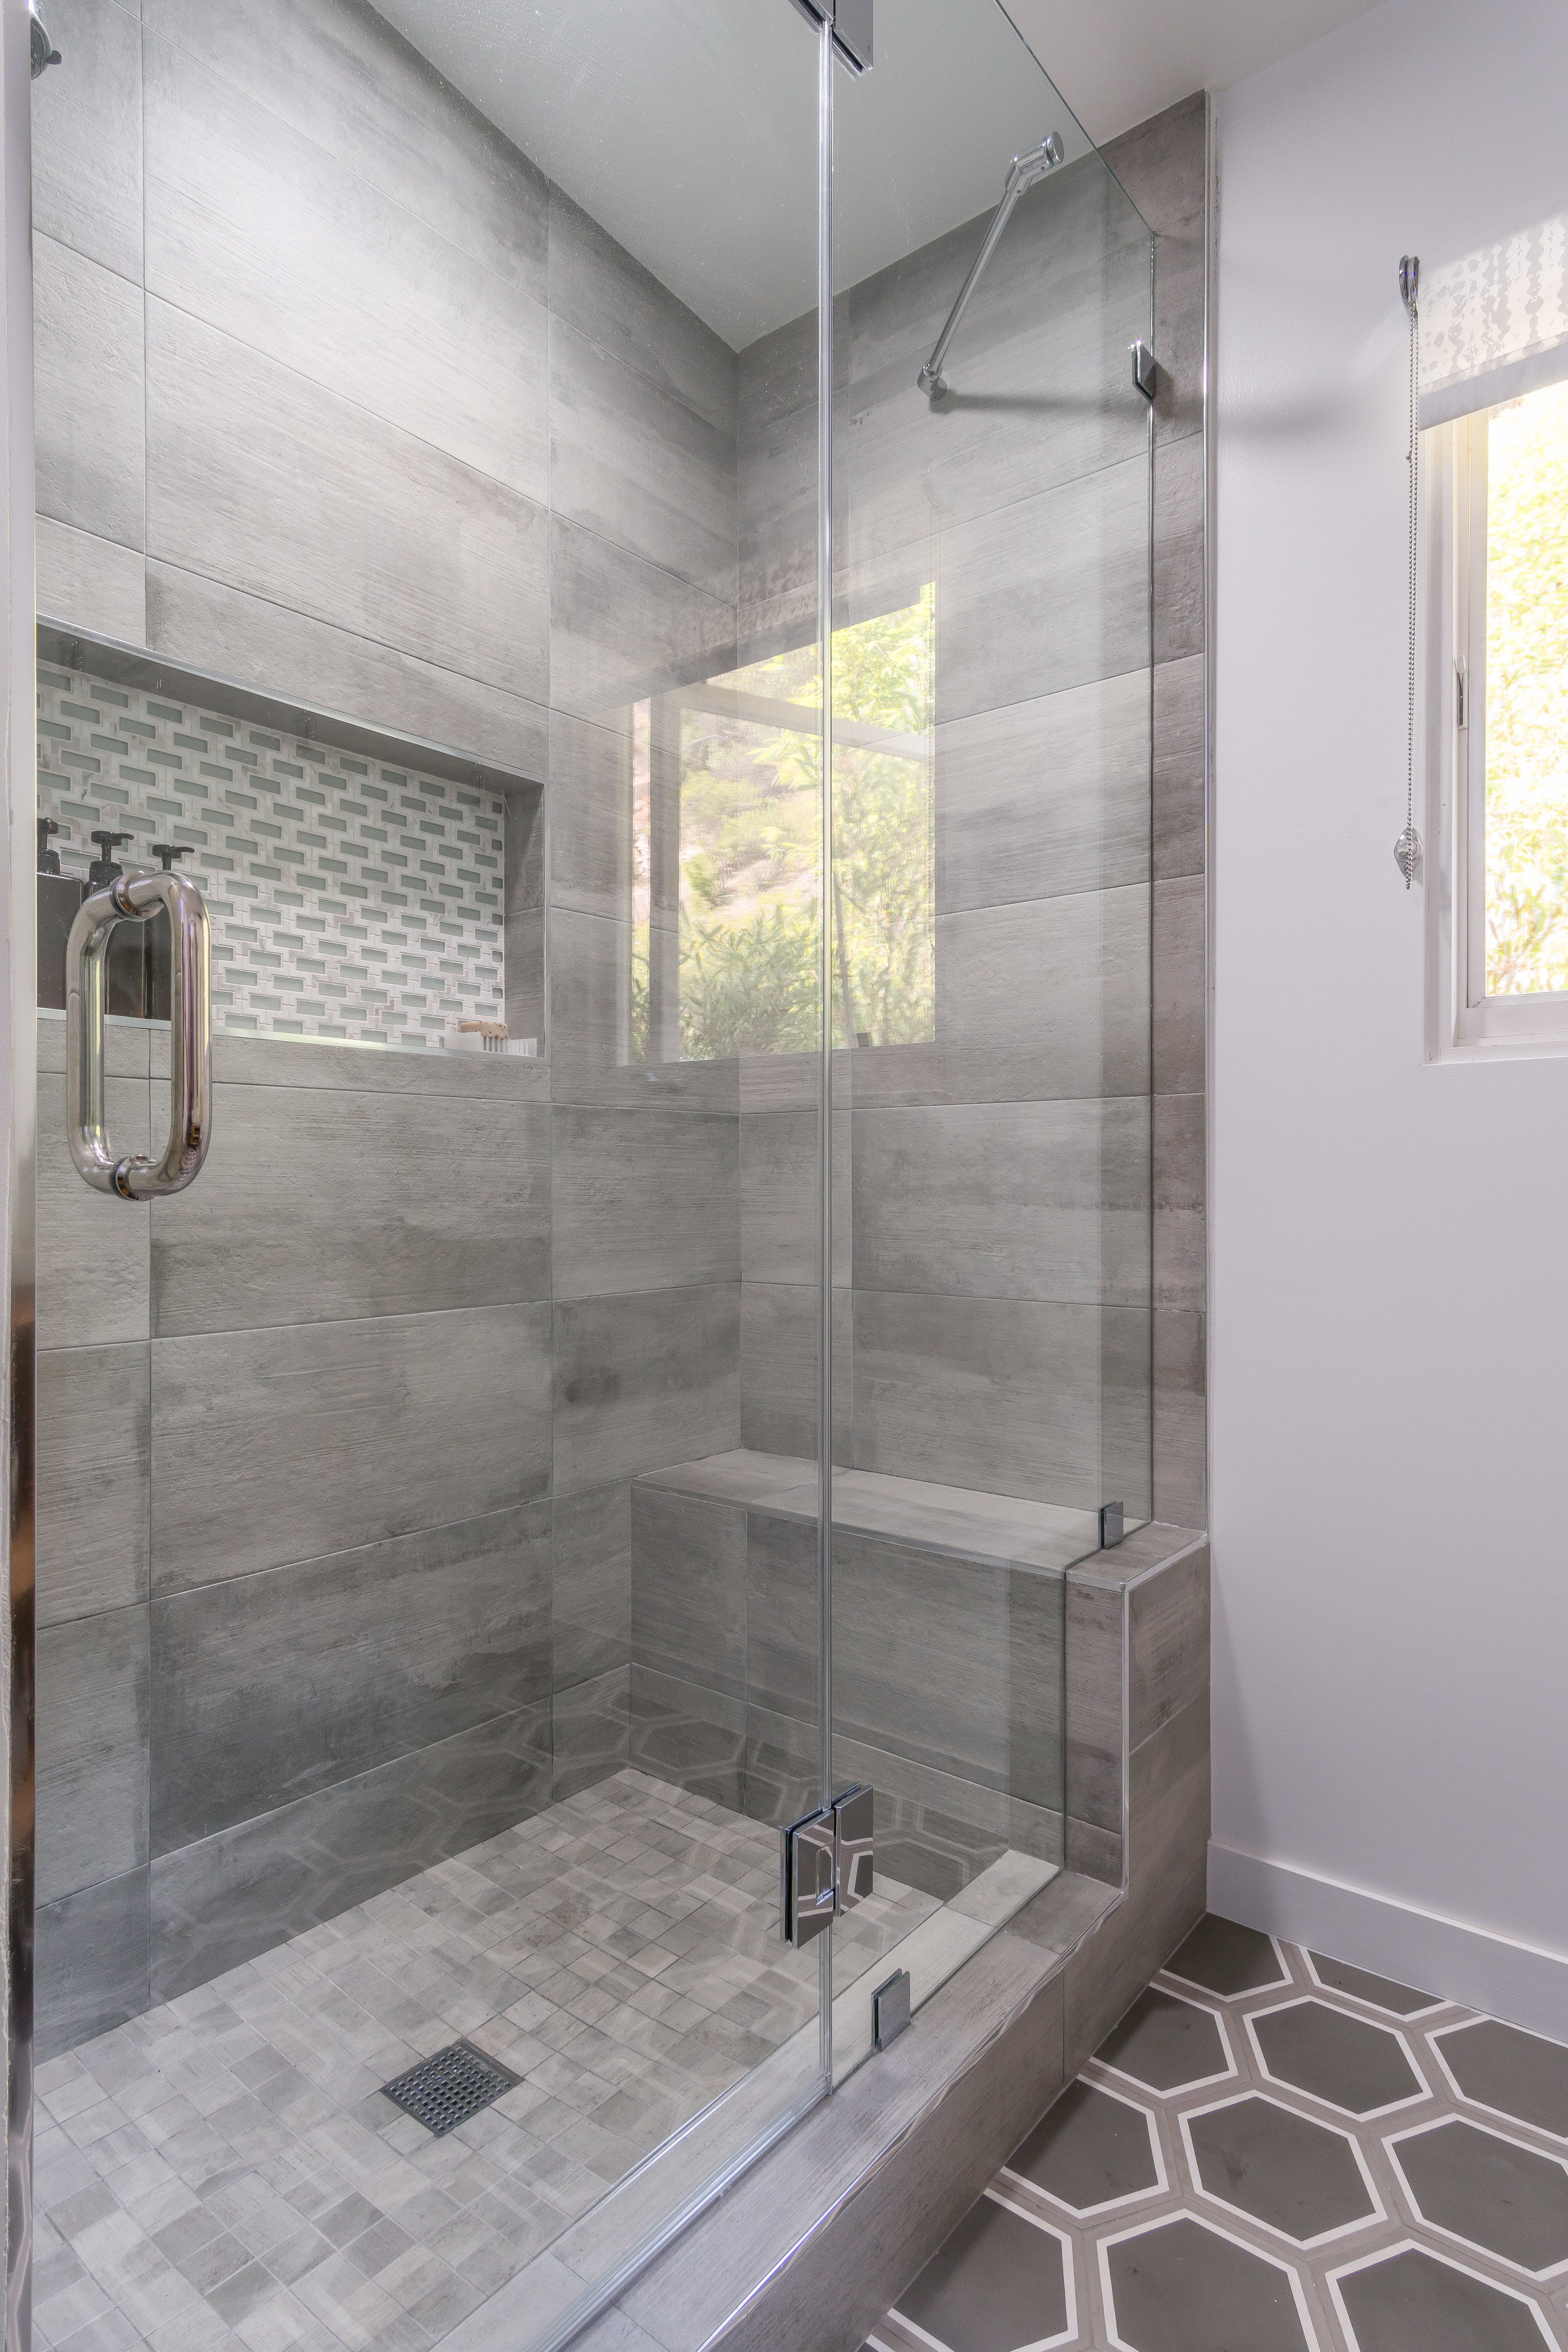 Delivered photo of the showe in this bathroom remodel ©Ryan Carr - Legacy Listing Photography - 2017